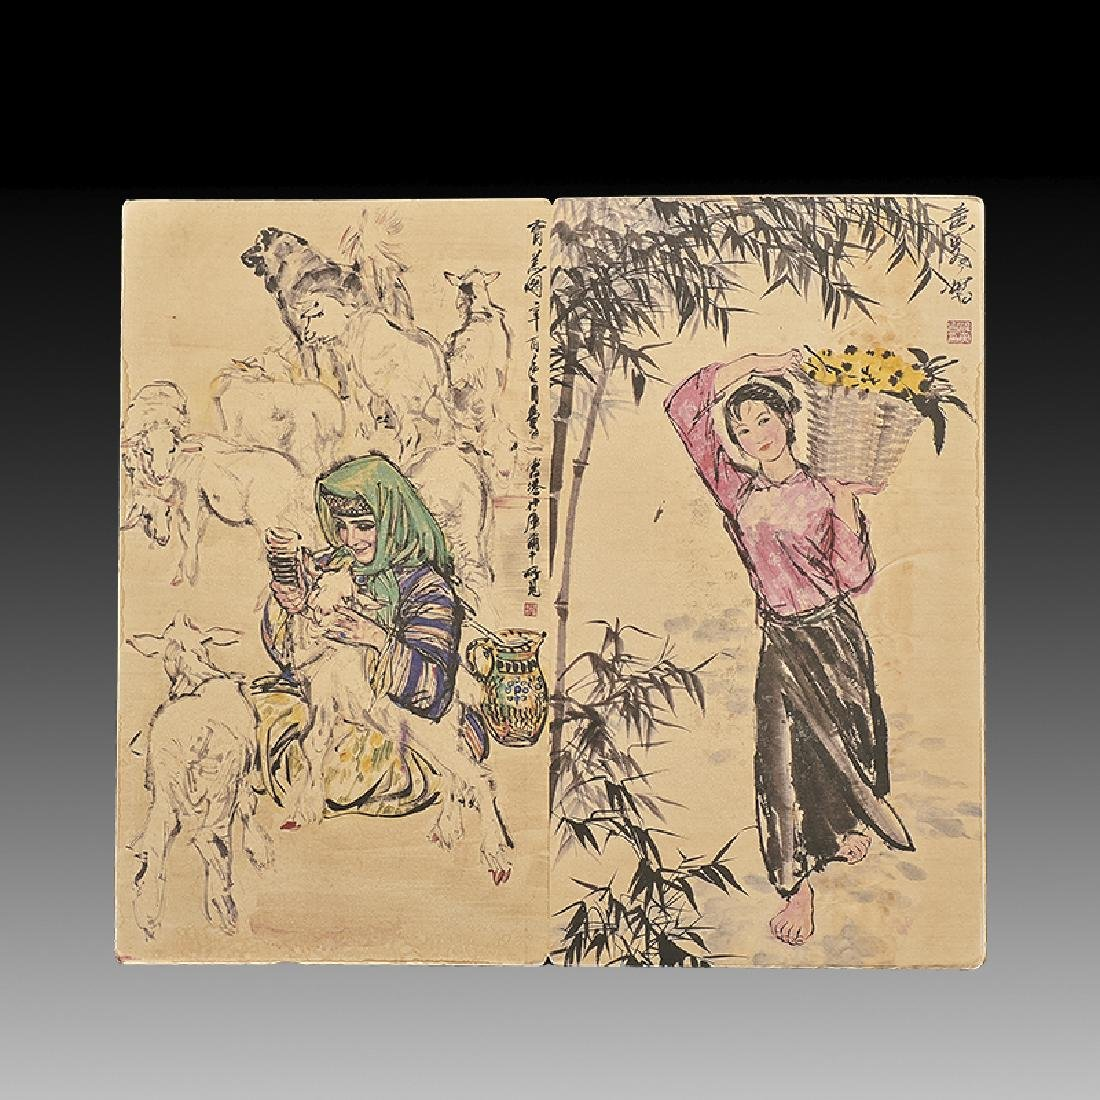 Rare chinese painting album by Hang zhou (1925-1997) - 7